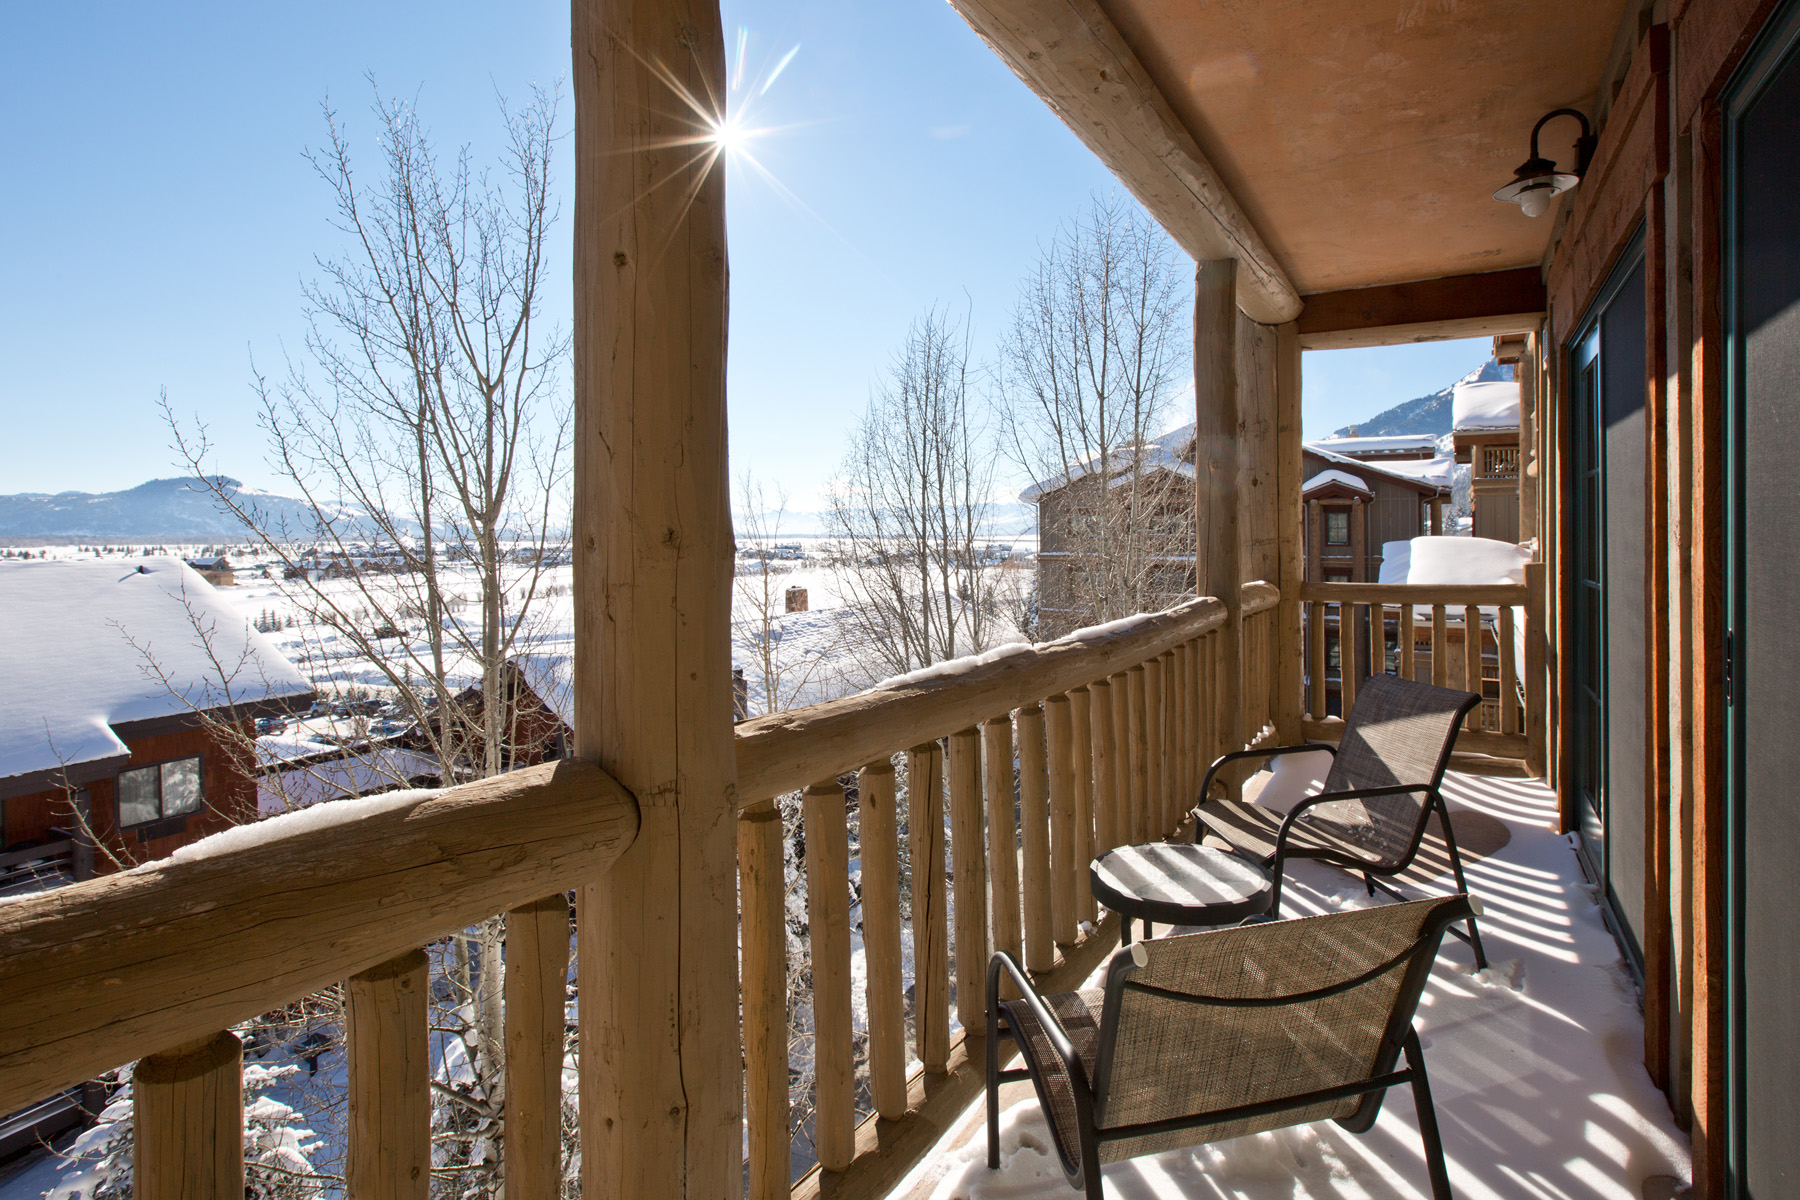 Piso por un Venta en 2 bdrm 2 bath condo in Teton Village 3385 W. Cody Lane units 301300 Teton Mountain Lodge Teton Village, Wyoming, 83025 Jackson Hole, Estados Unidos